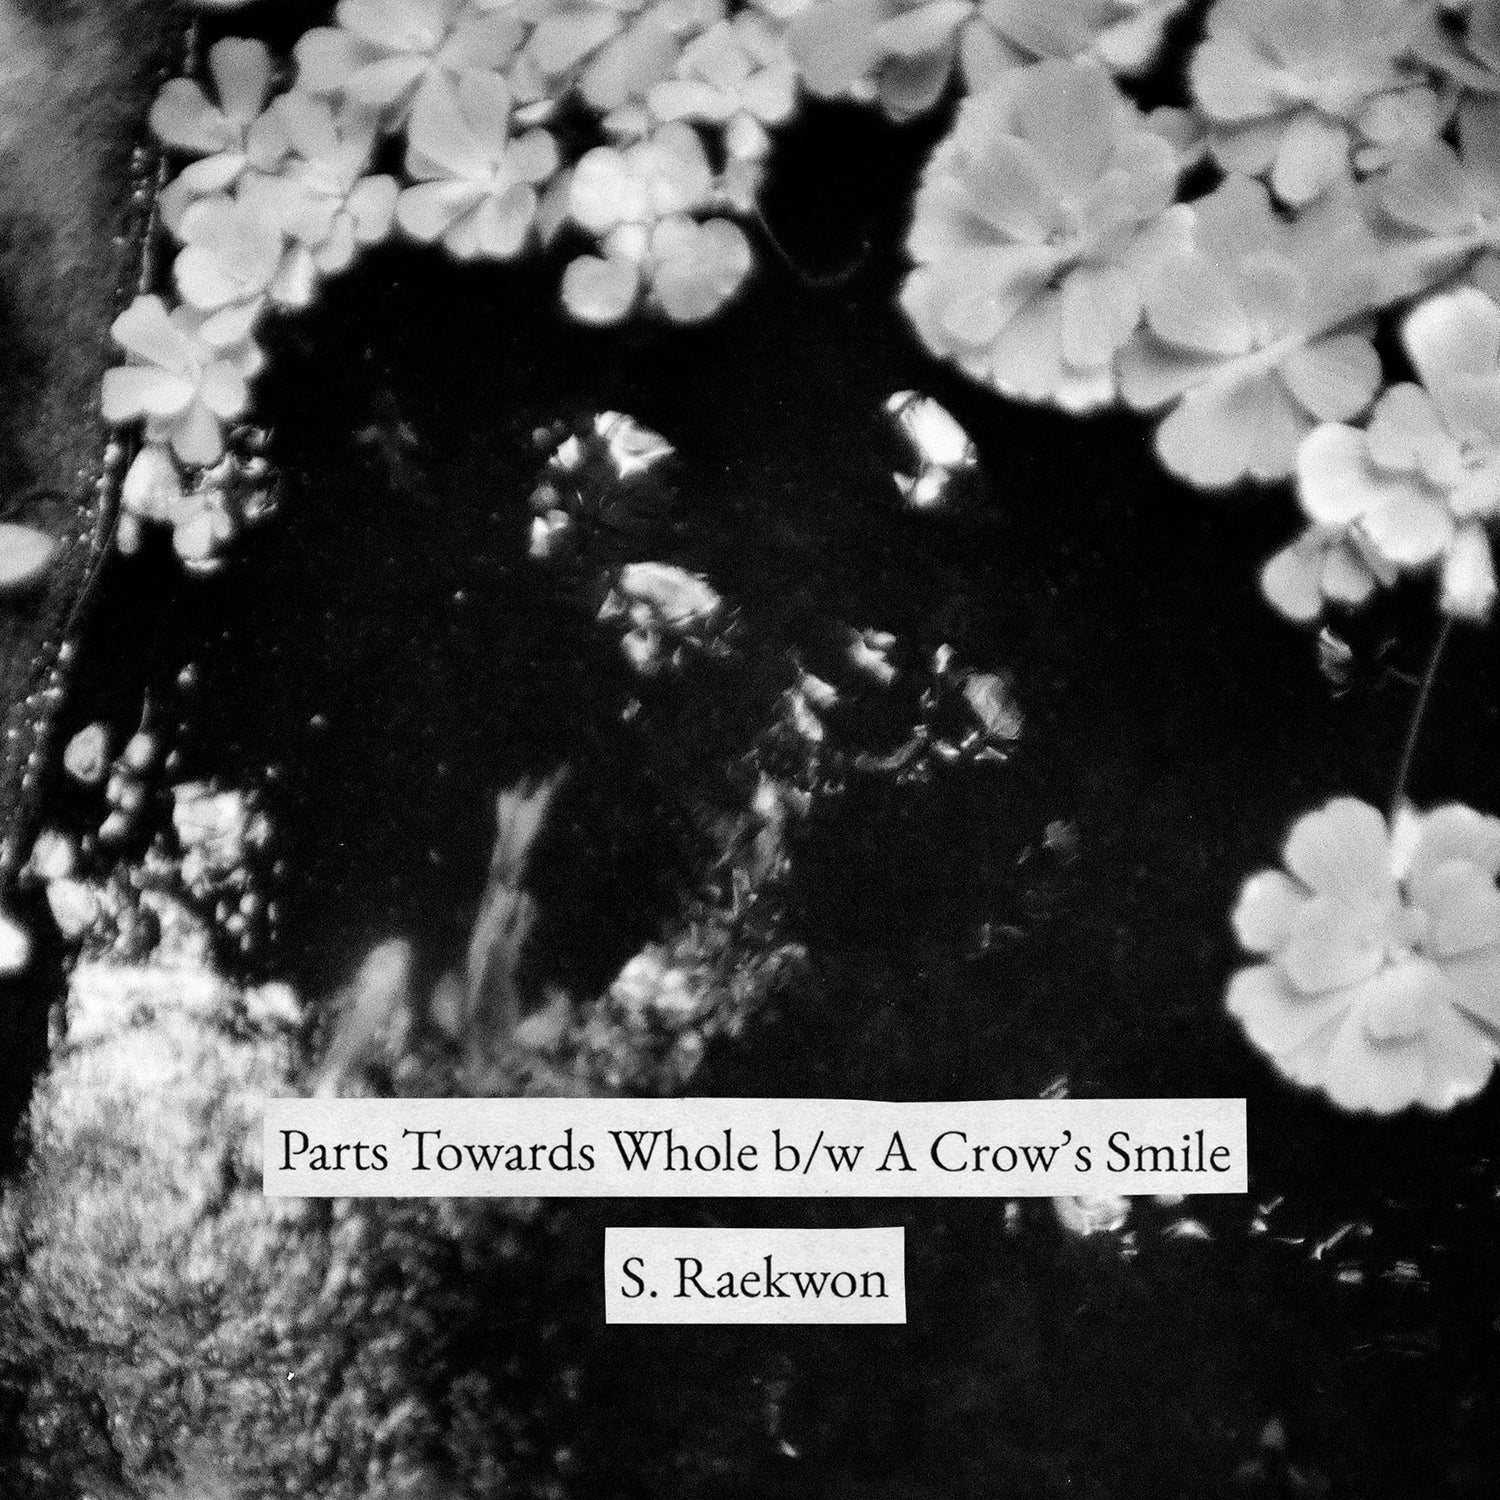 Parts Towards Whole b/w A Crow's Smile